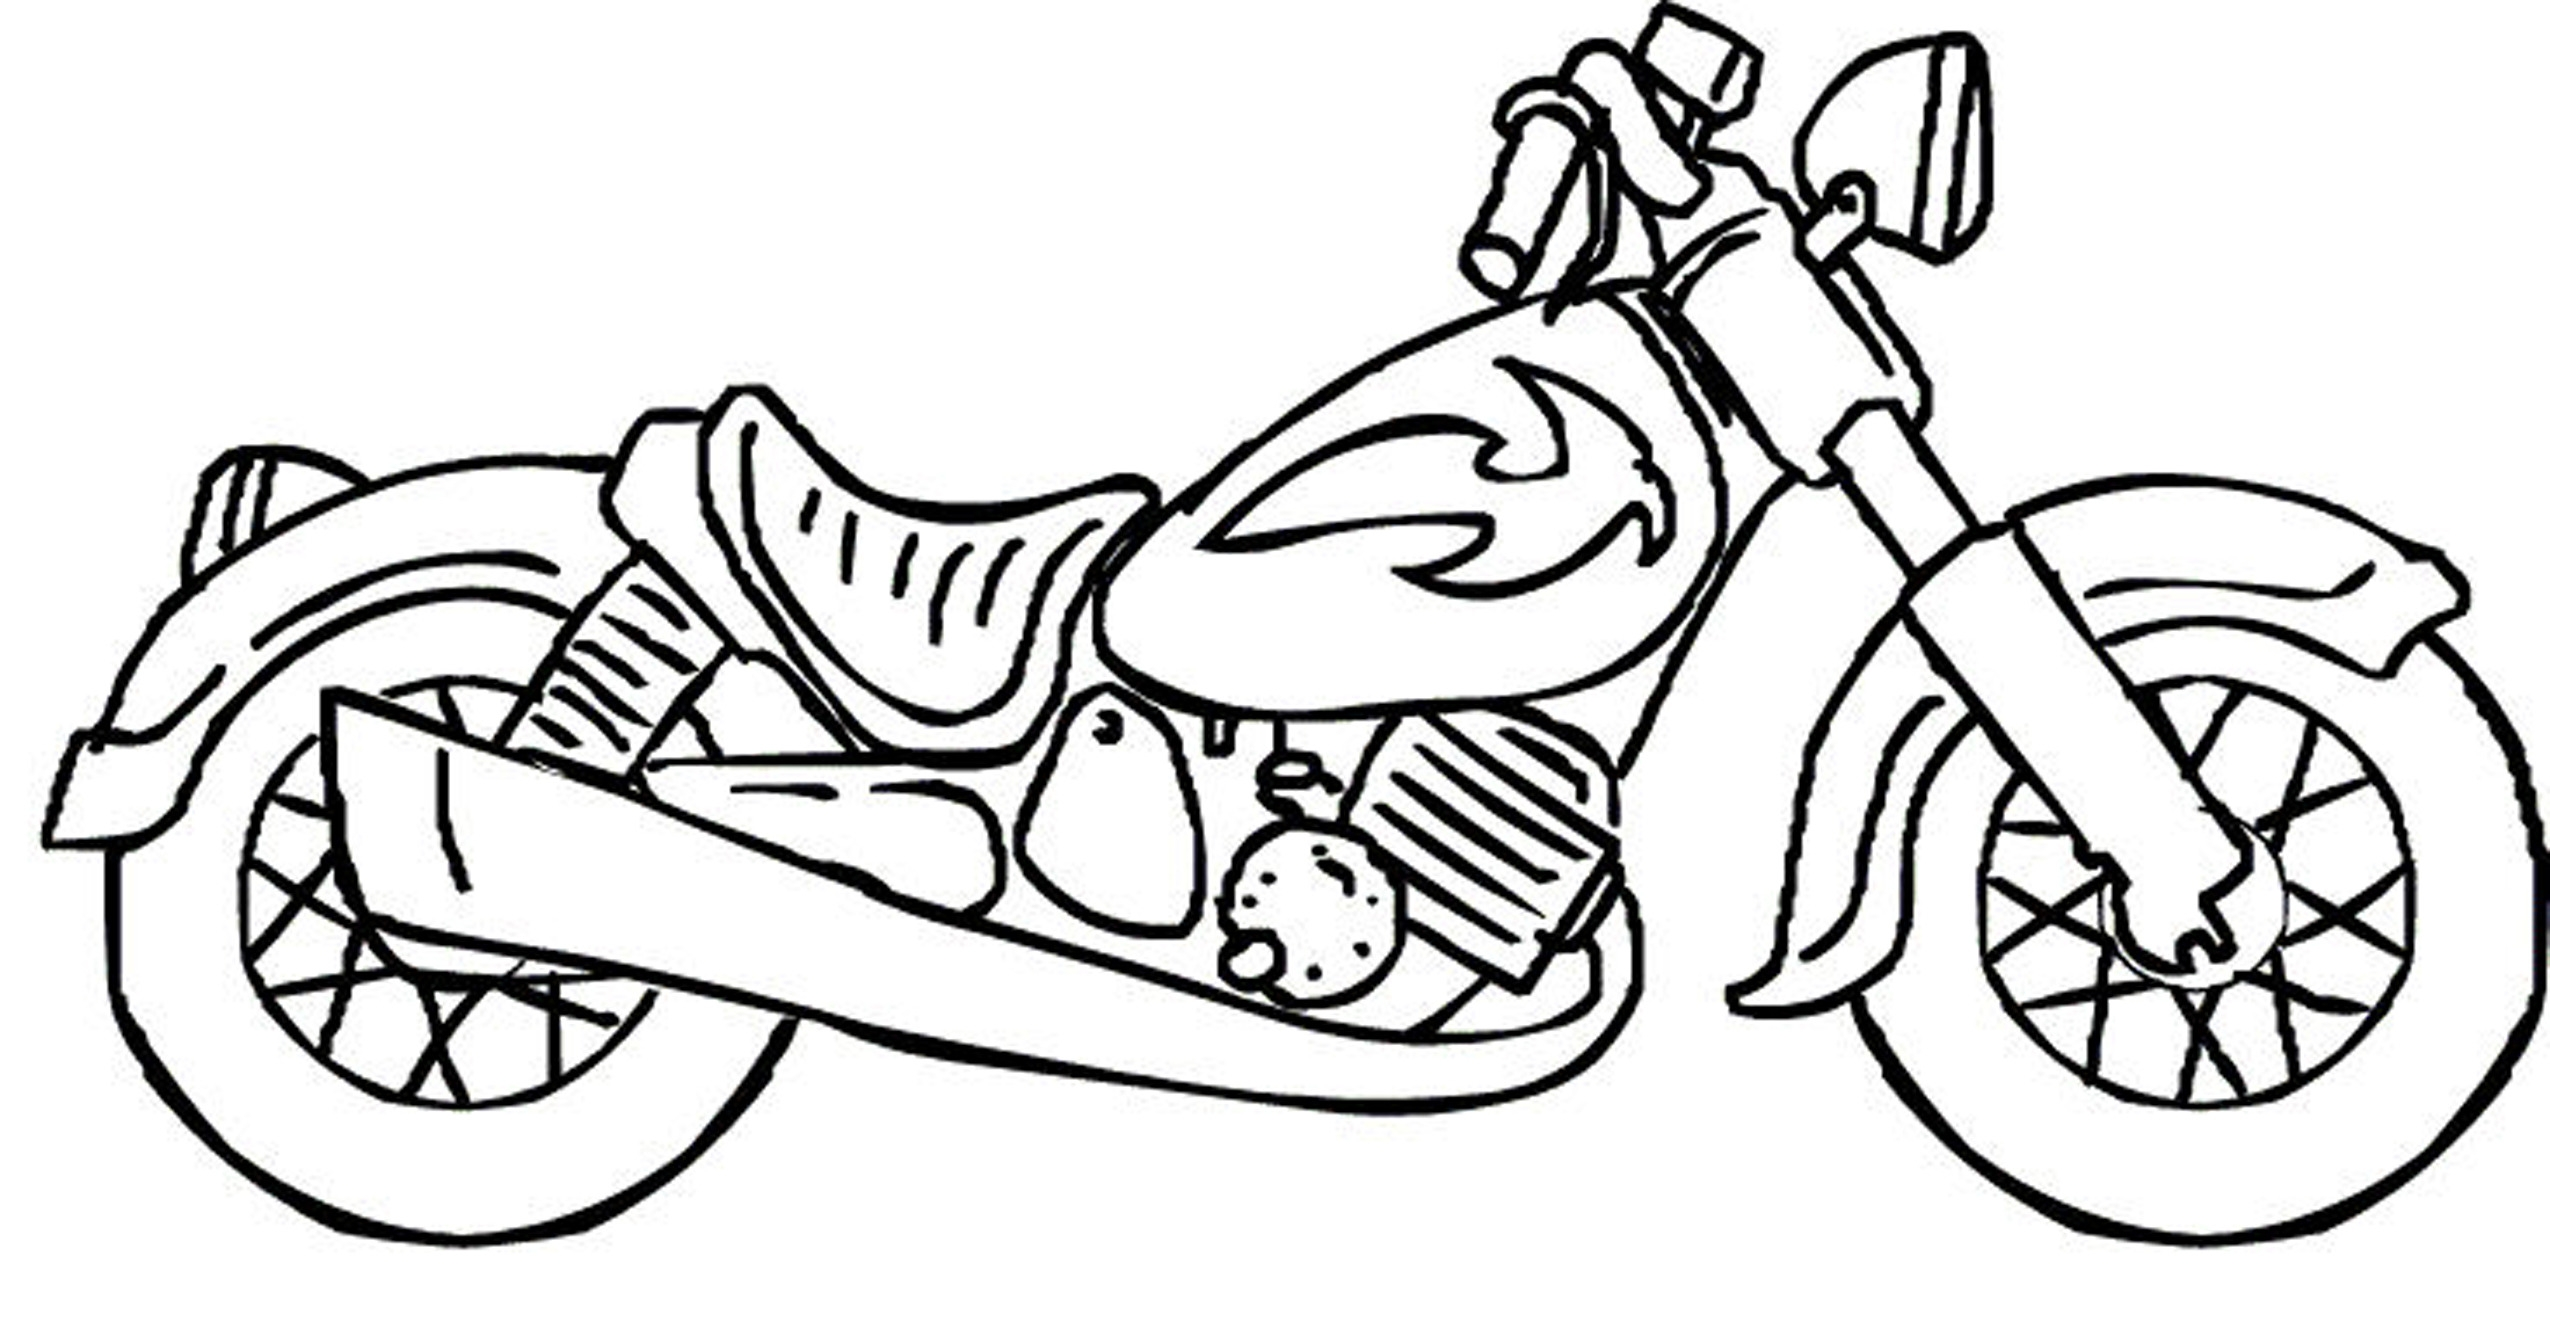 2550x1336 Harley Davidson Motorcycle Coloring Pages Coloringstar Best